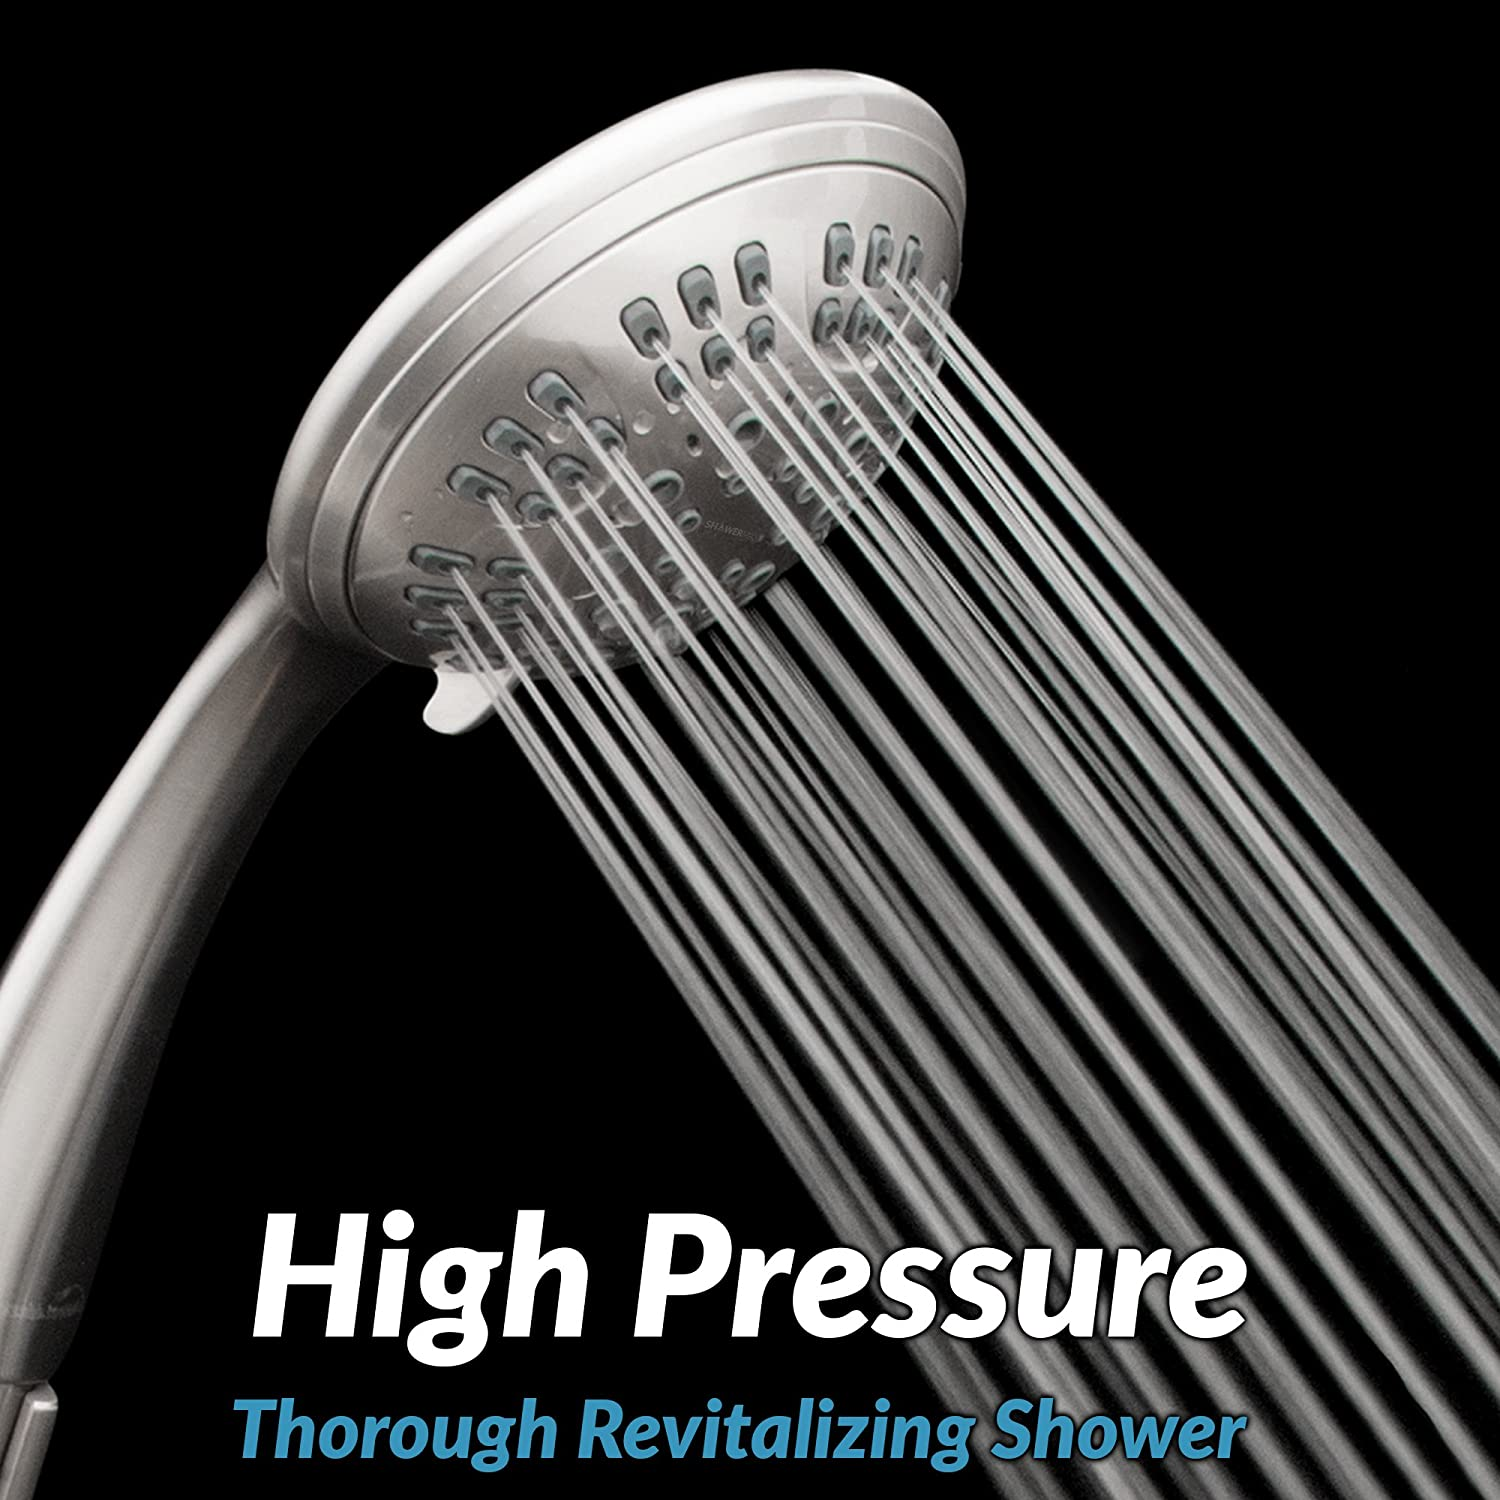 ShowerMaxx Premium Shower Head with six Spray Settings